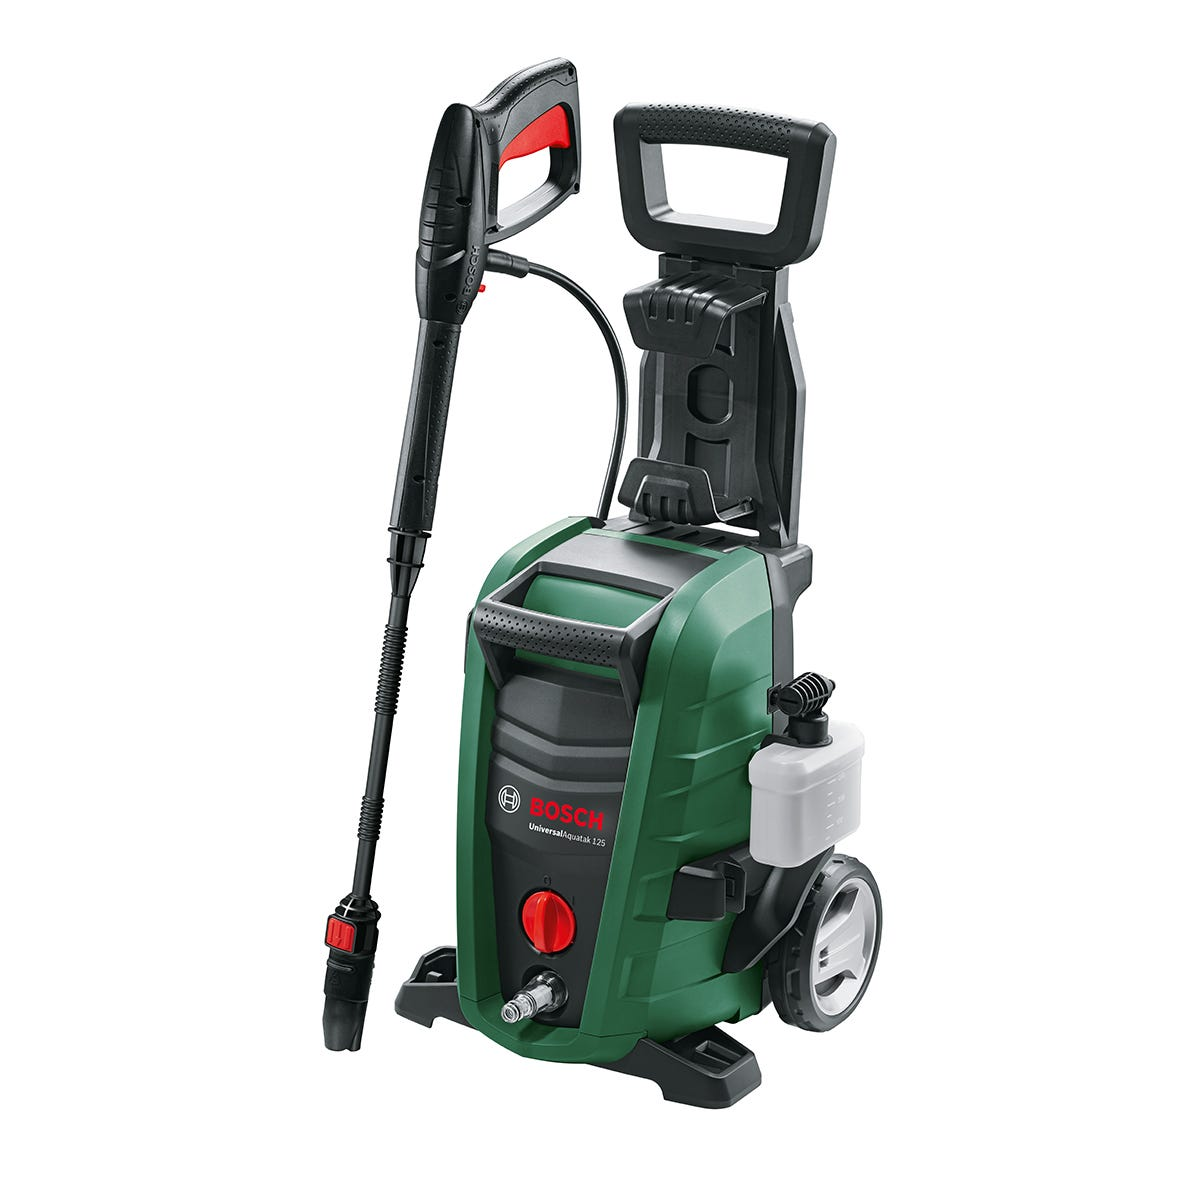 Image of Bosch Universal Aquatak 125 Pressure Washer Plus Car Kit